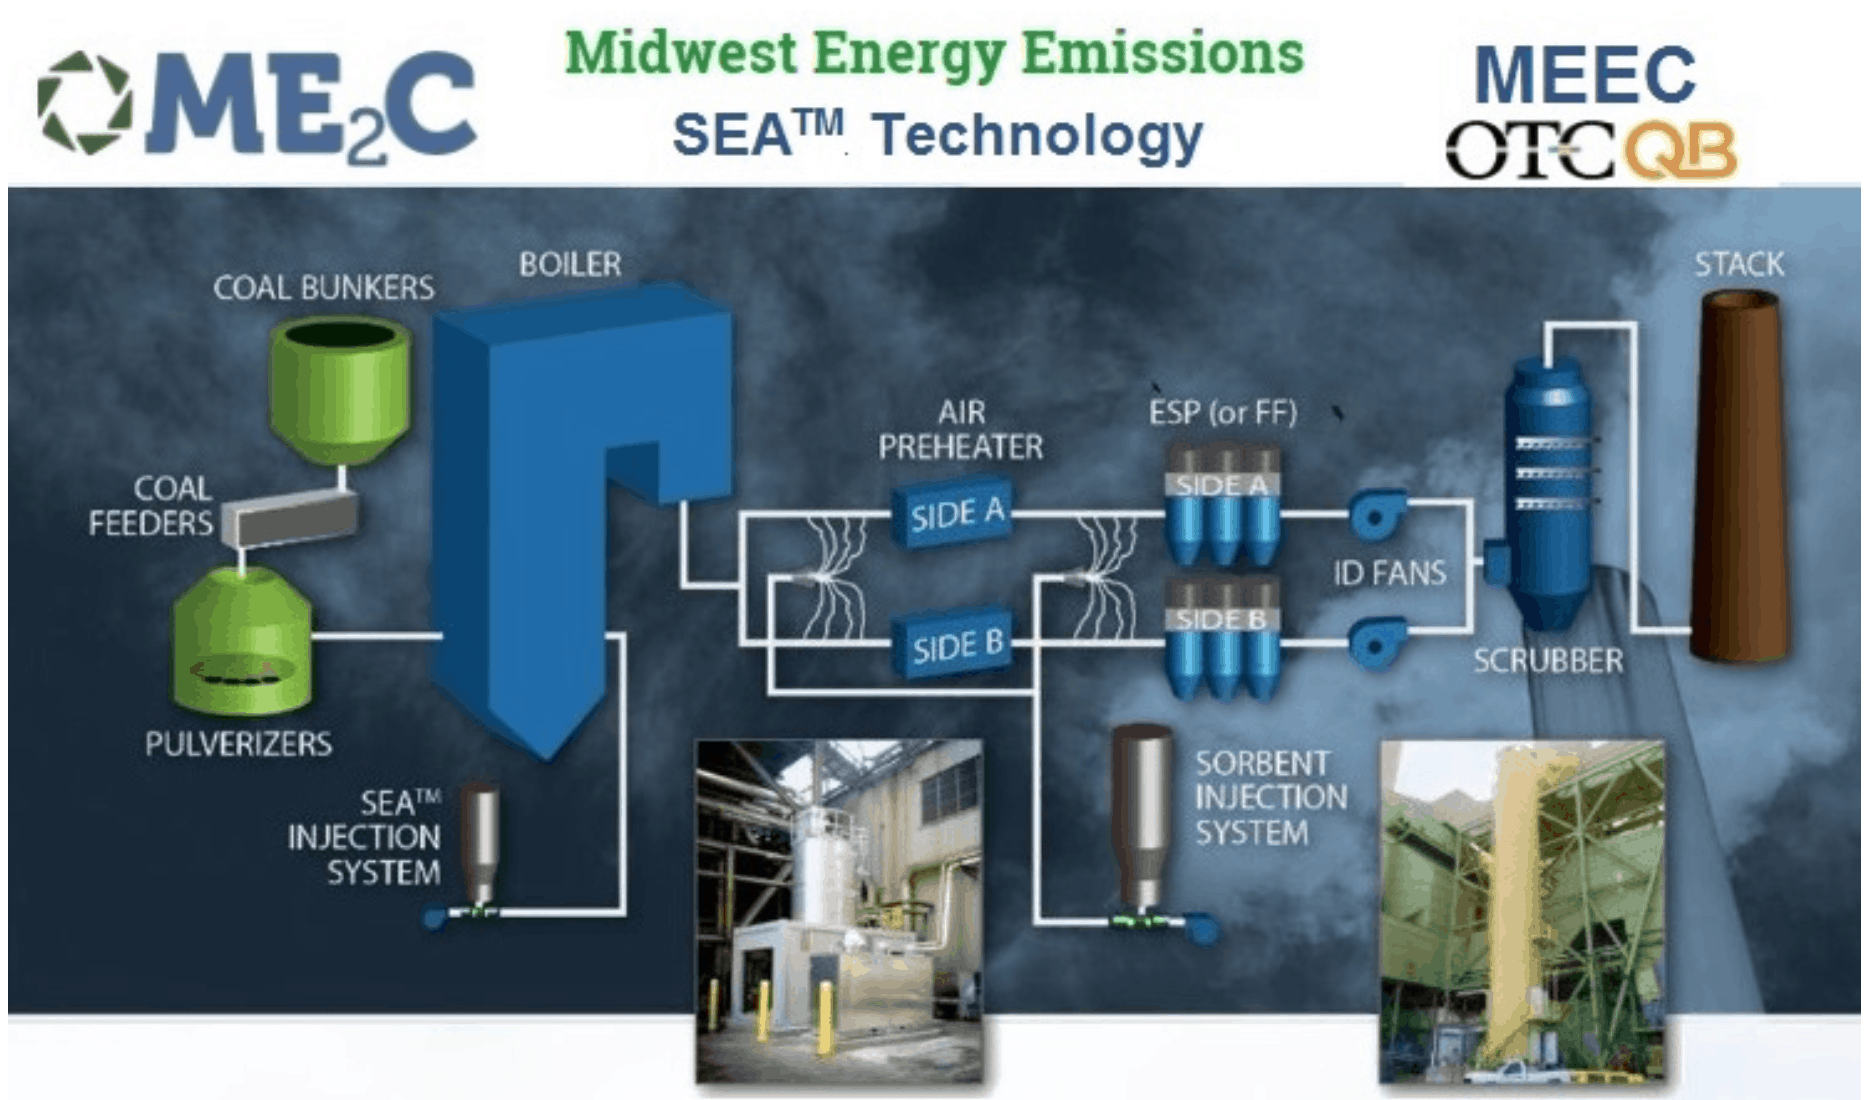 MEEC: Midwest Energy Emissions Announces 2 Multi-Million Dollar Contracts